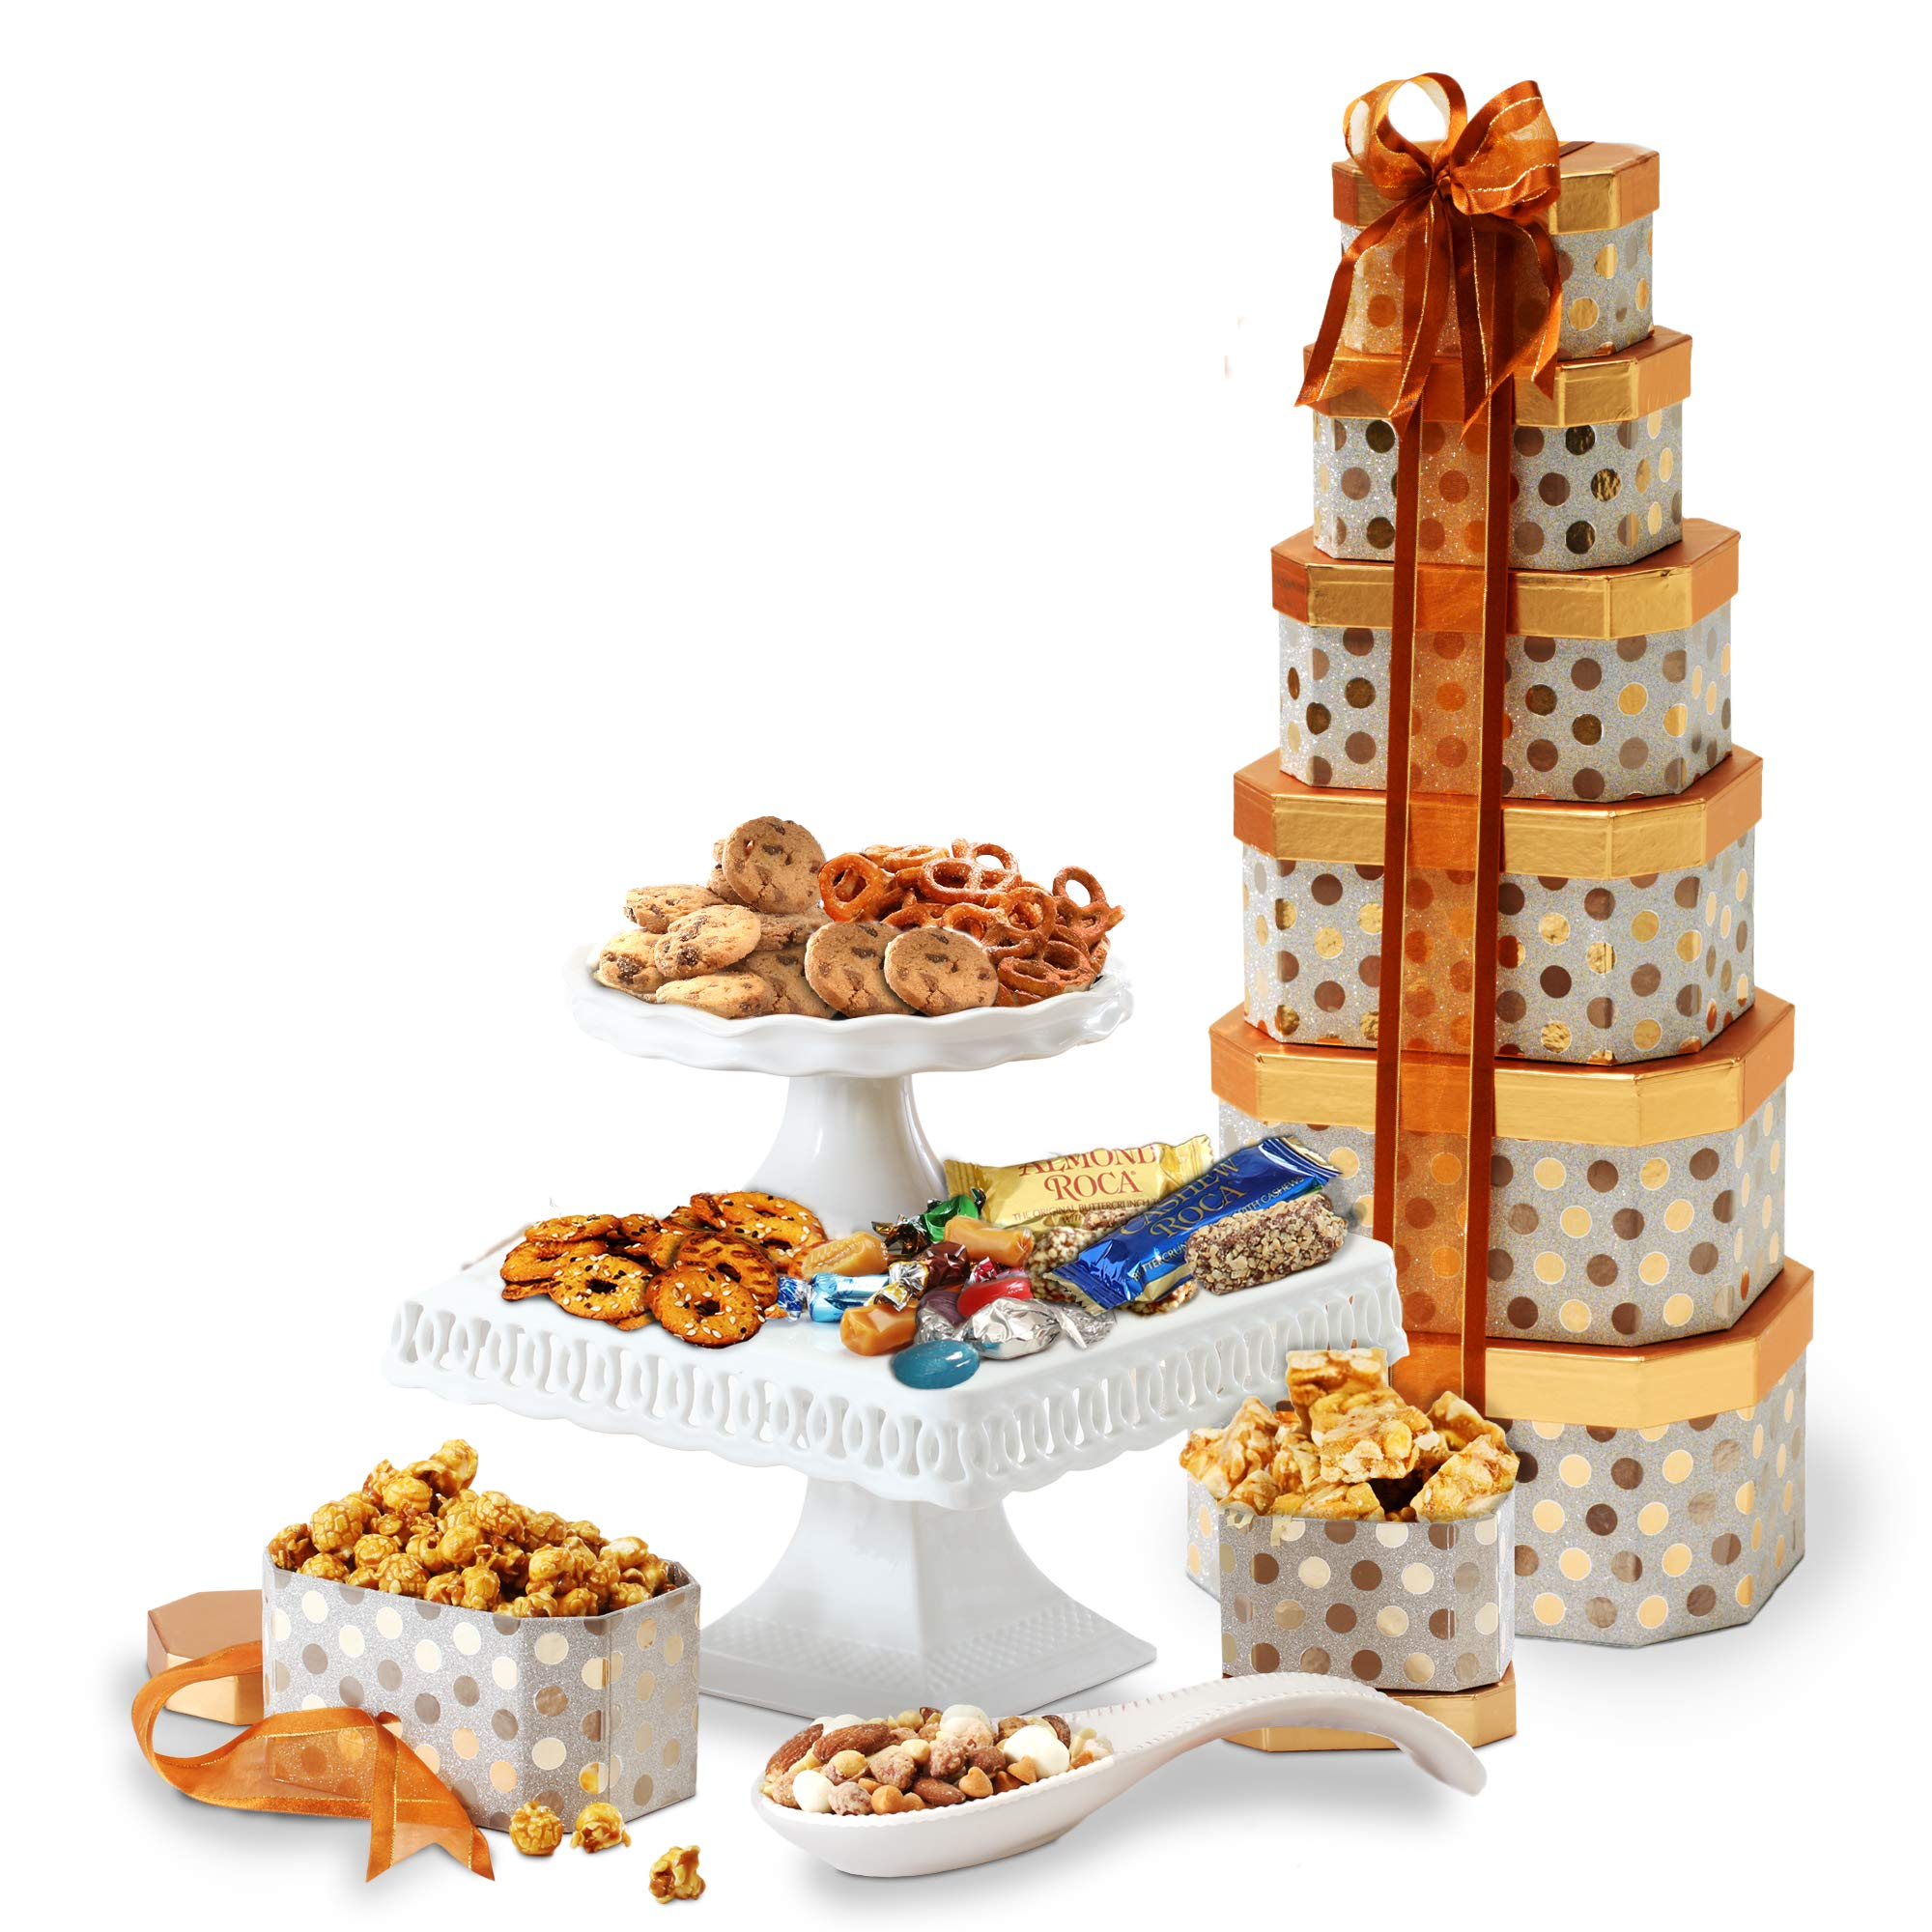 Broadway Basketeers Gourmet Gift Tower with an Assortment of Snacks, Sweets, Cookies and Nuts by Broadway Basketeers